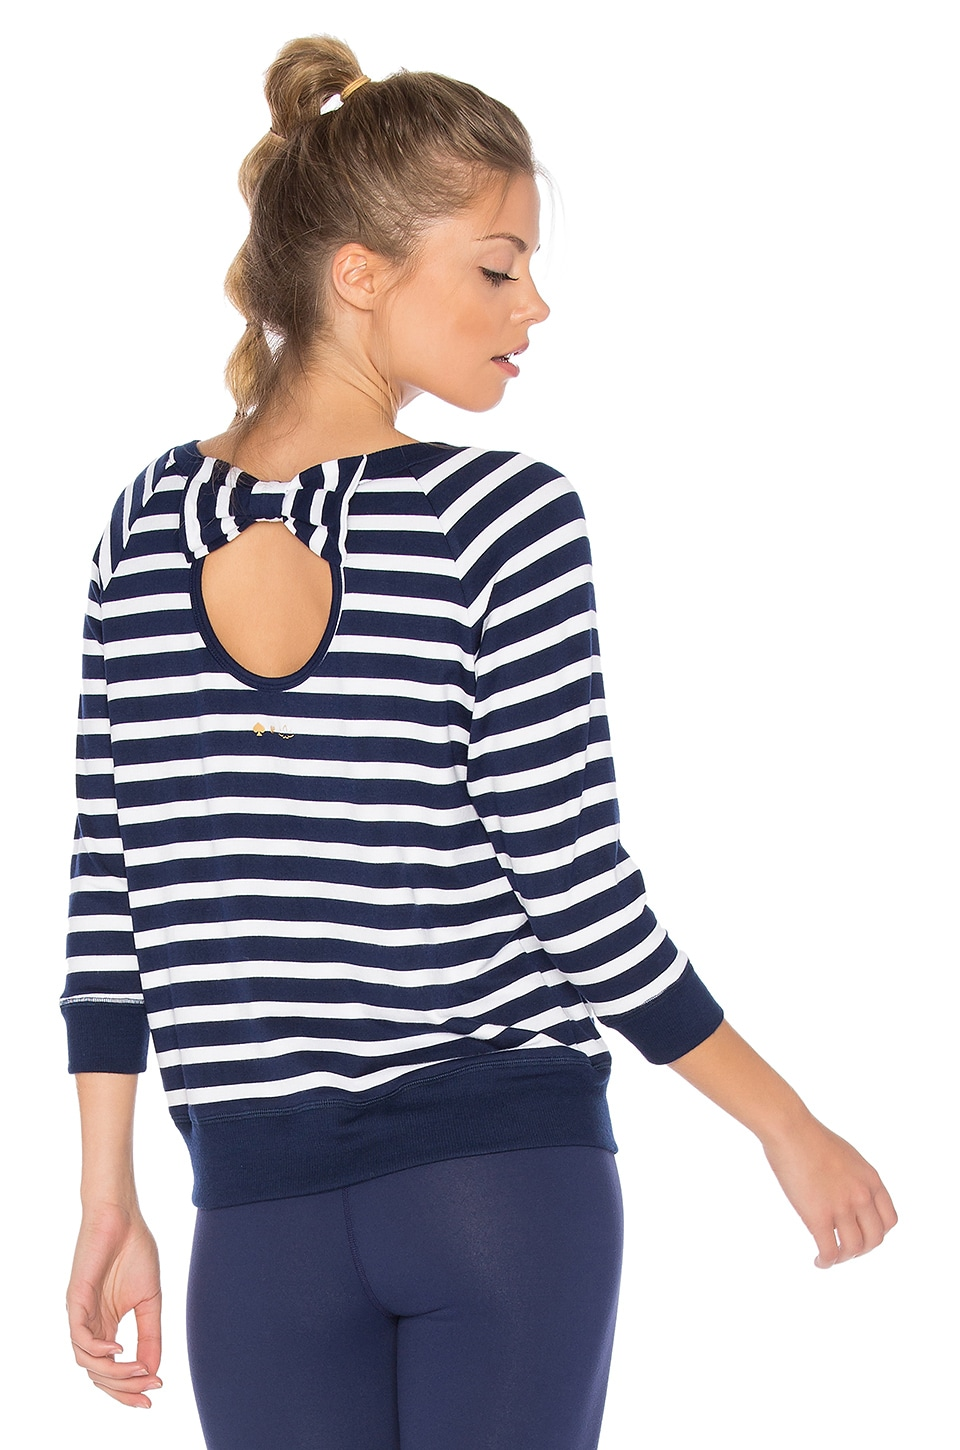 x kate spade Bow Cut Sweatshirt by Beyond Yoga